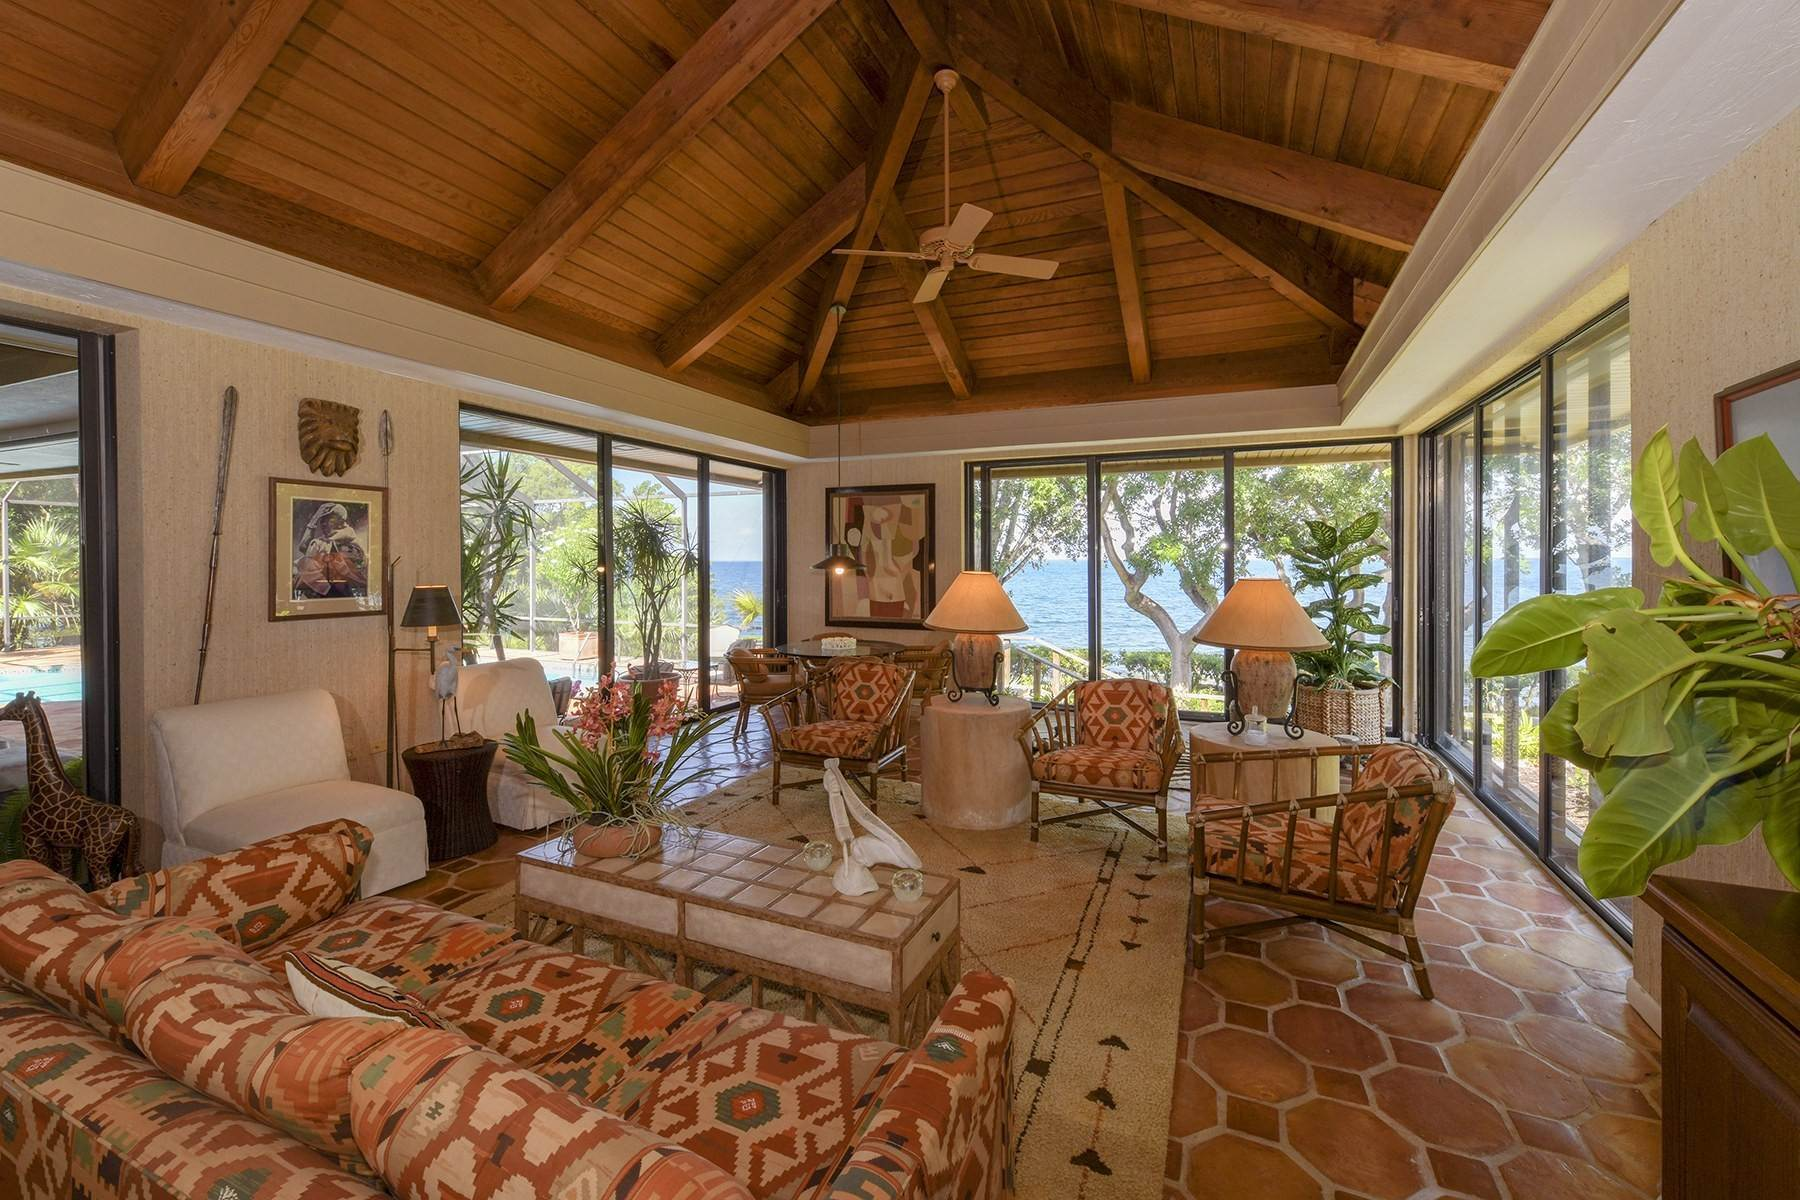 Property for Active at 10 Cannon Point, Key Largo, FL 10 Cannon Point Key Largo, Florida 33037 United States